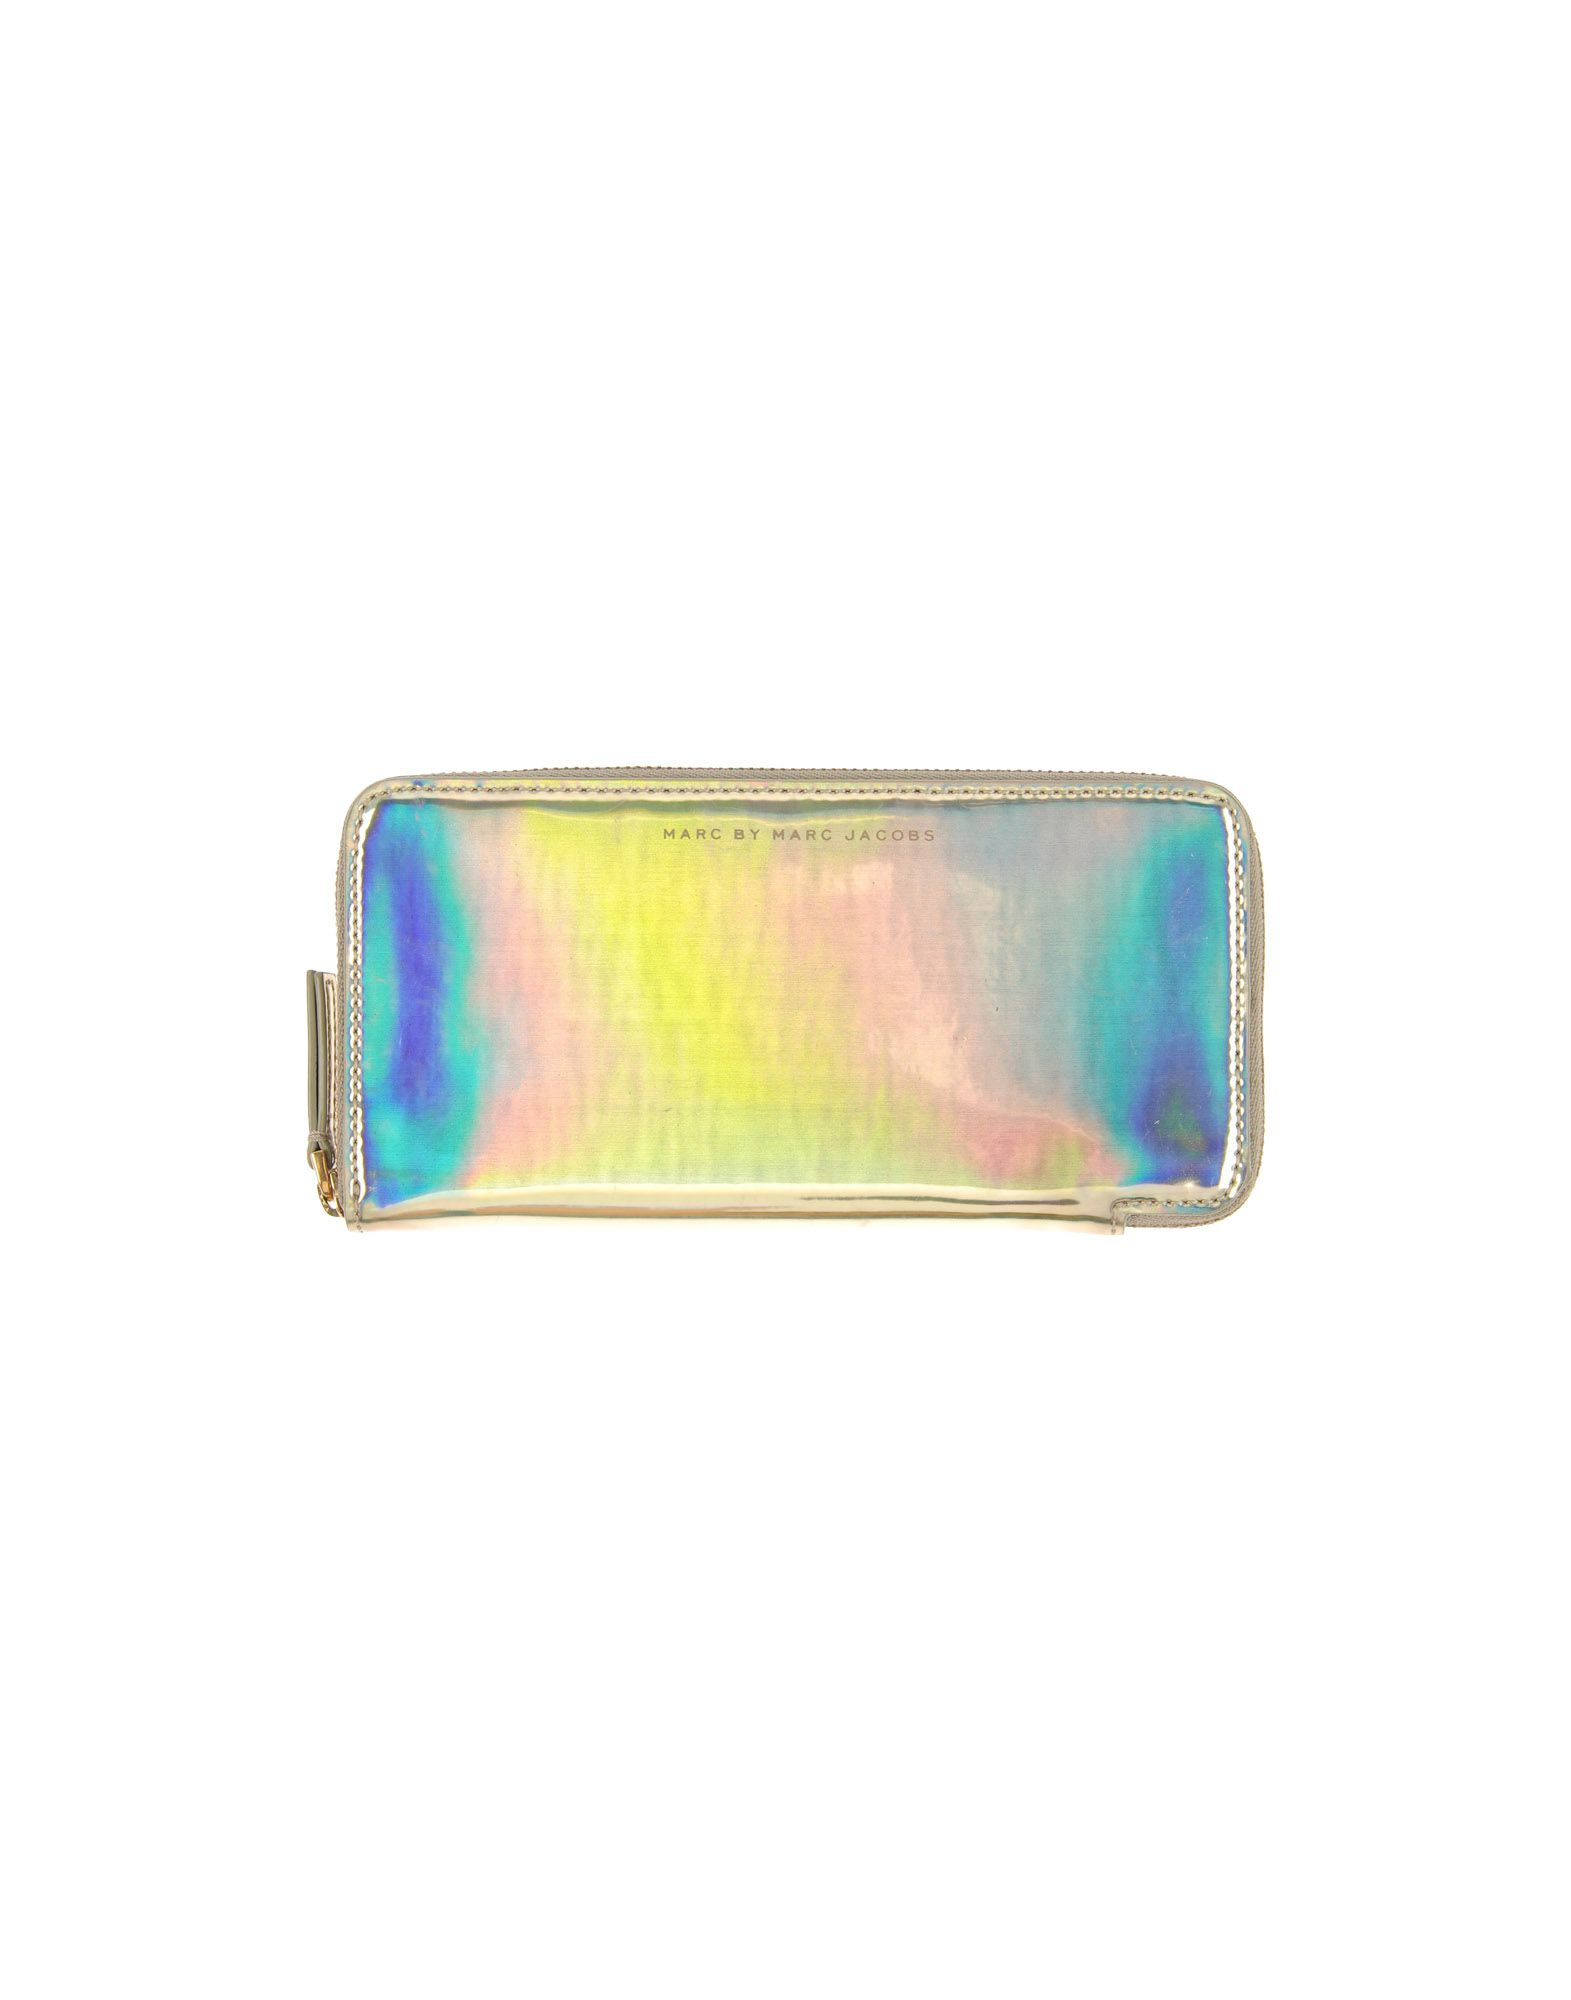 ee69ce39aec Marc By Marc Jacobs Wallet in Metallic - Lyst